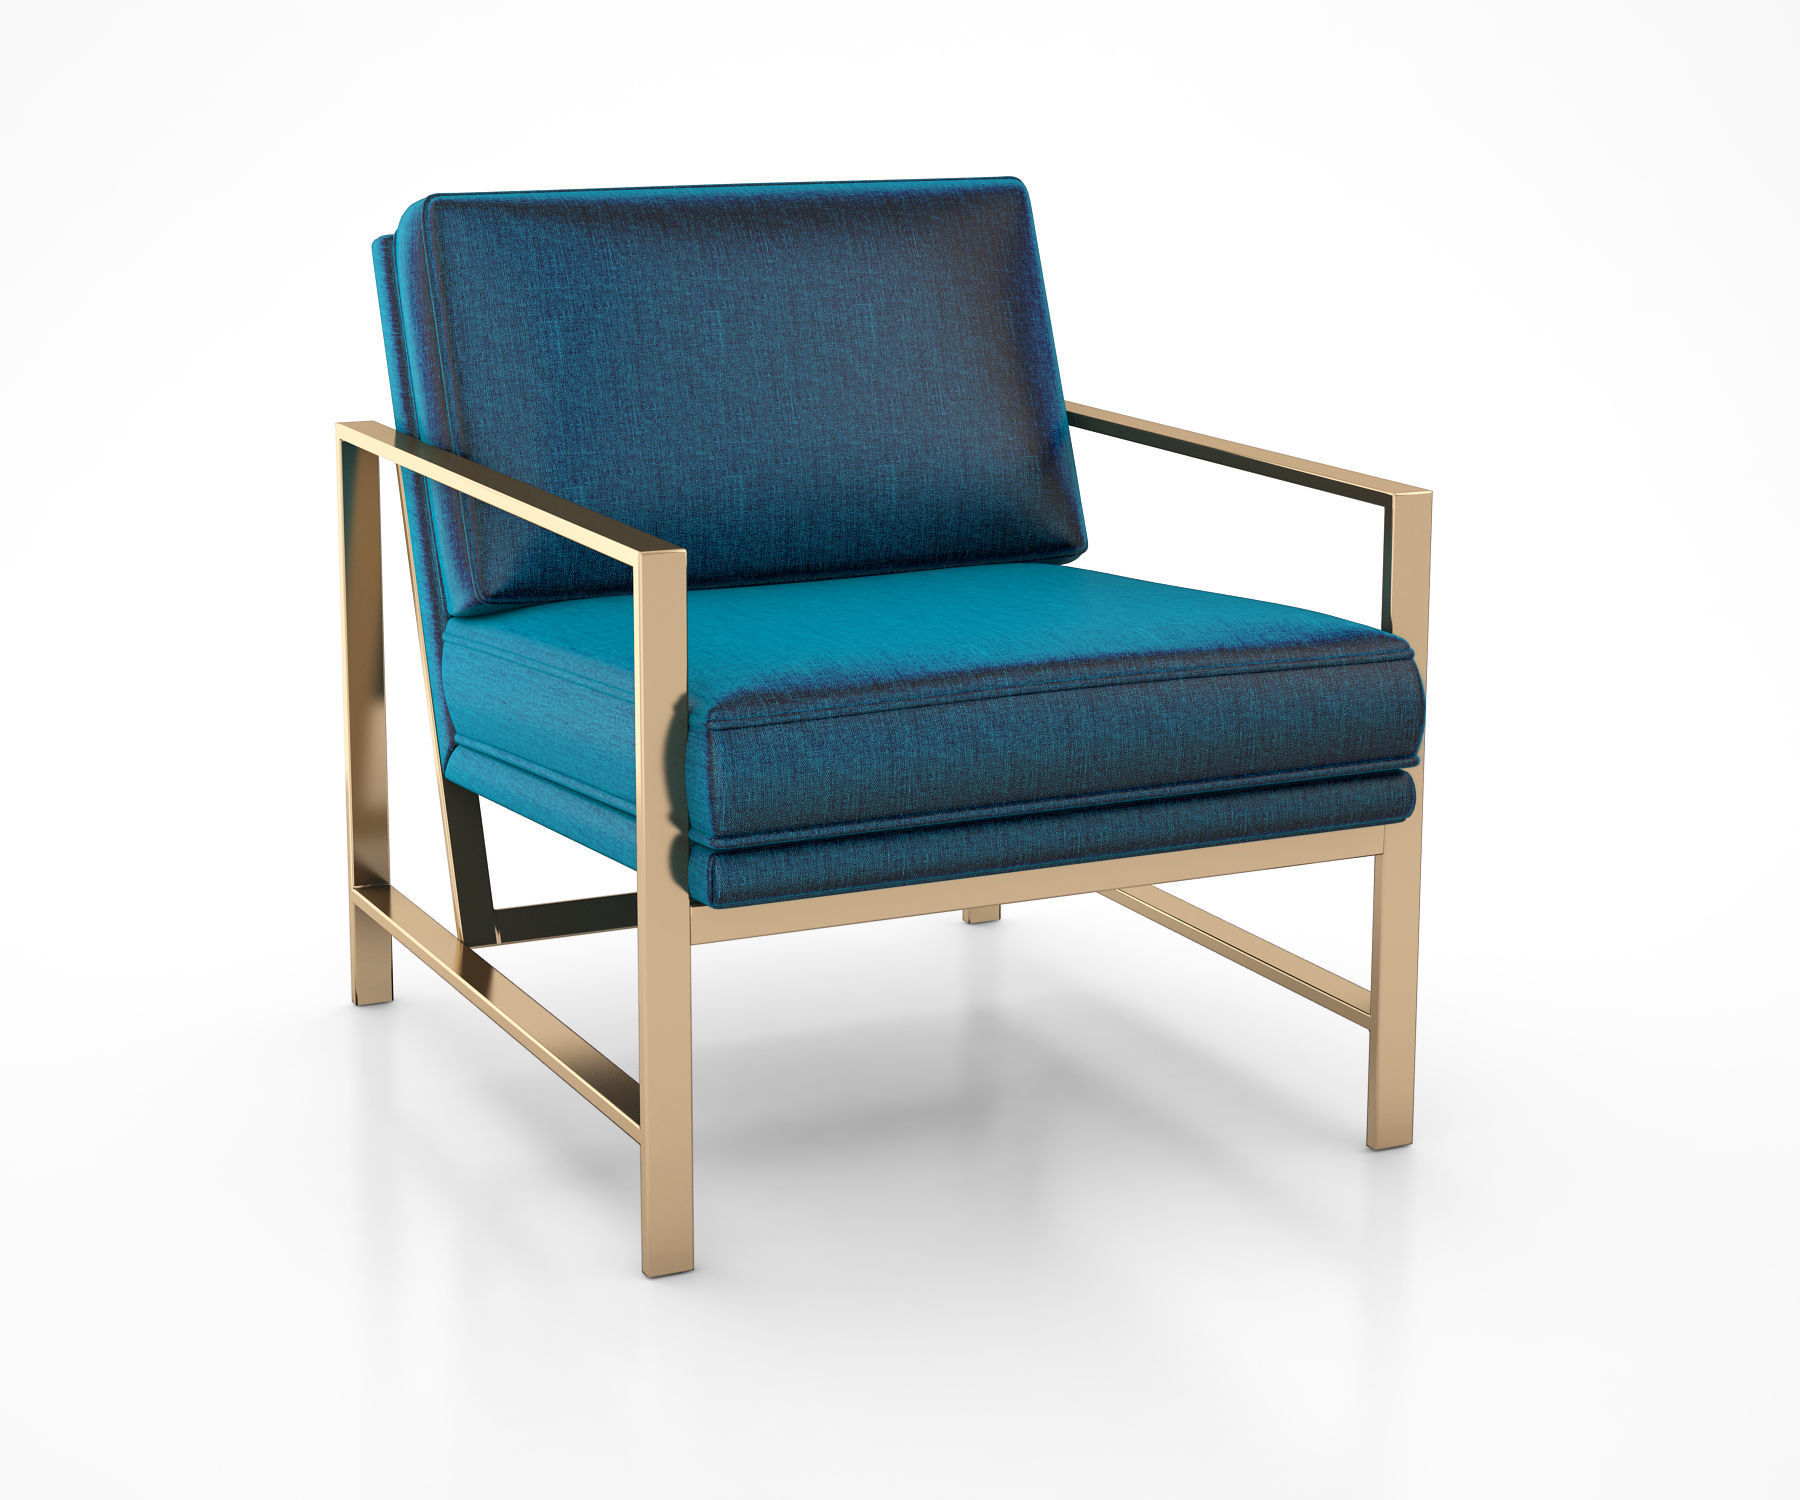 Metal Frame Upholstered Chair Celestial Blue by West Elm